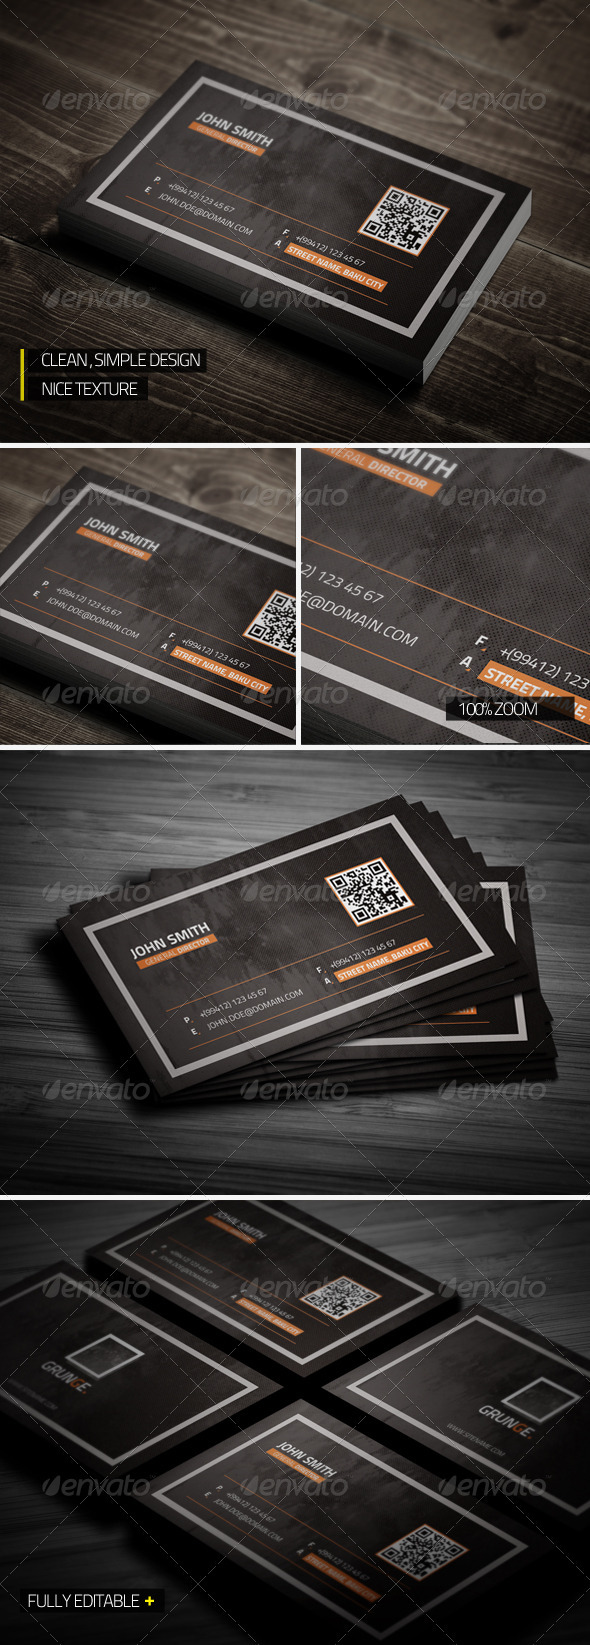 Grunge Business Card - Grunge Business Cards